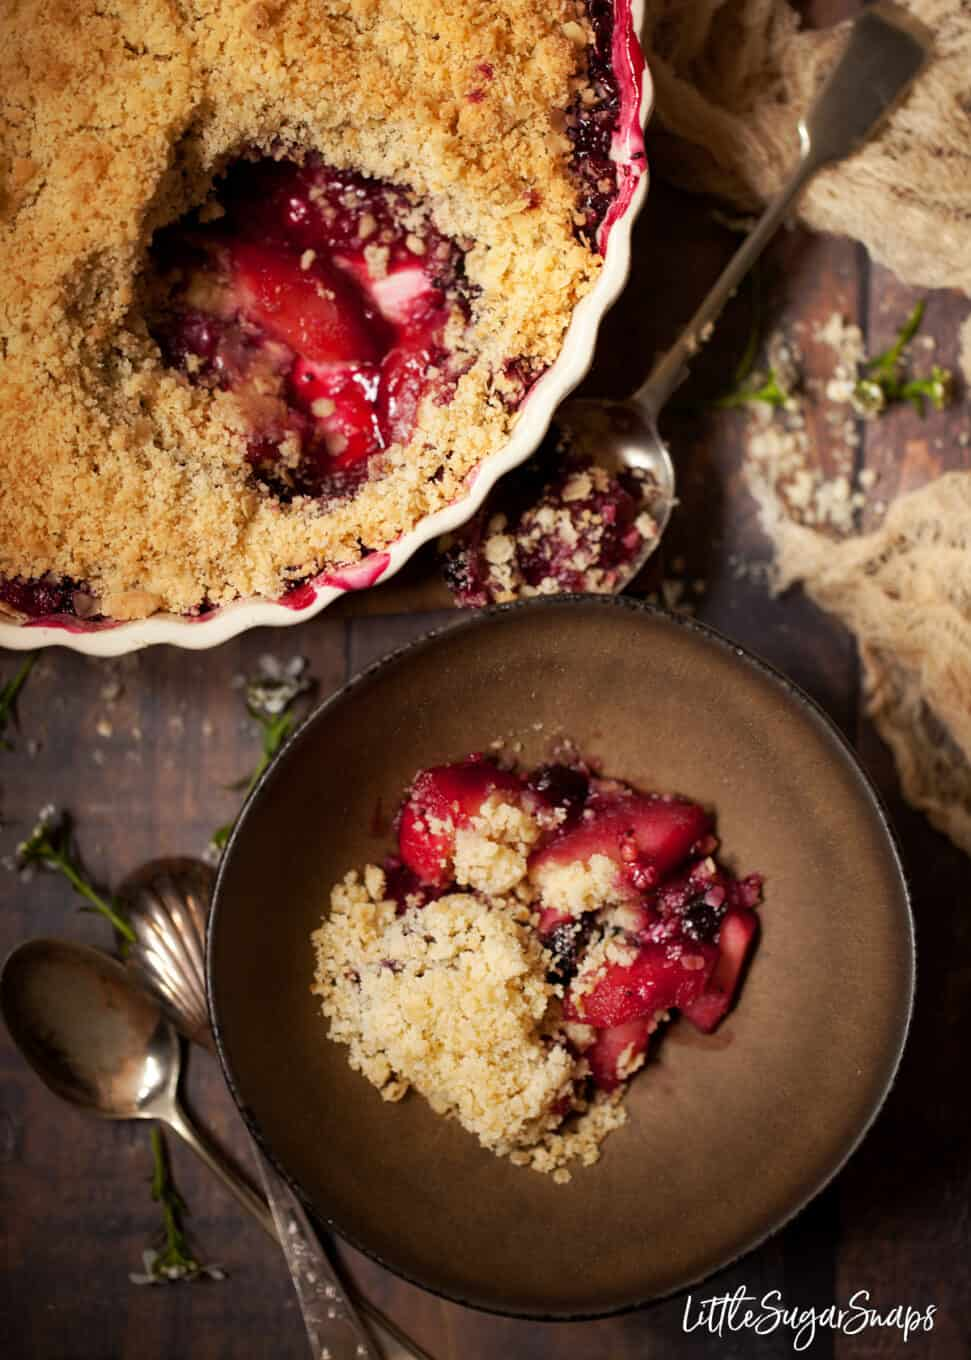 Blackcurrant crumble with apple served from a large round oven dish into a bowl.